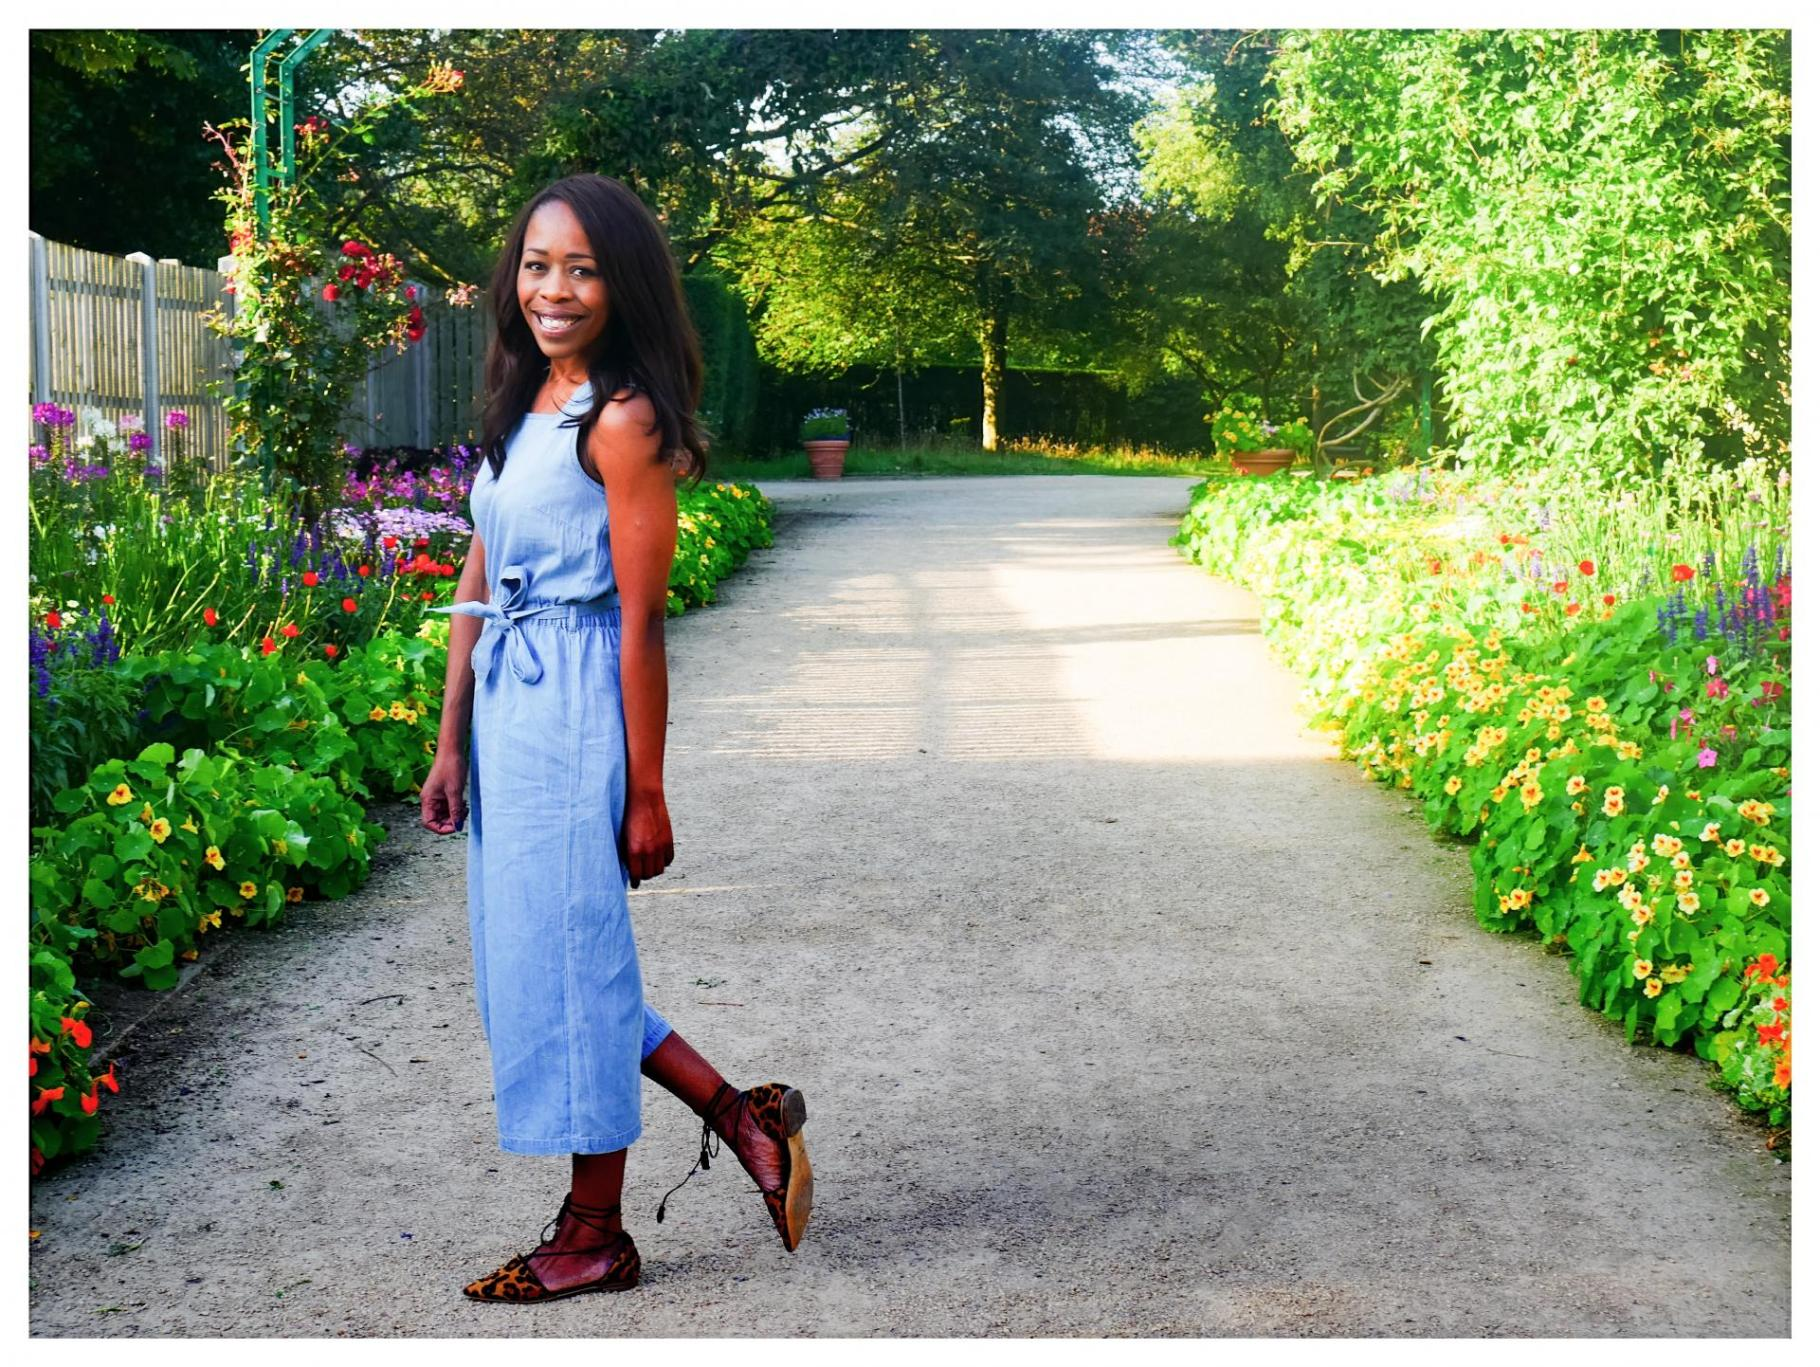 M&S Kids Pinafore Jumpsuit at the Monet Gardens |Trend Watch